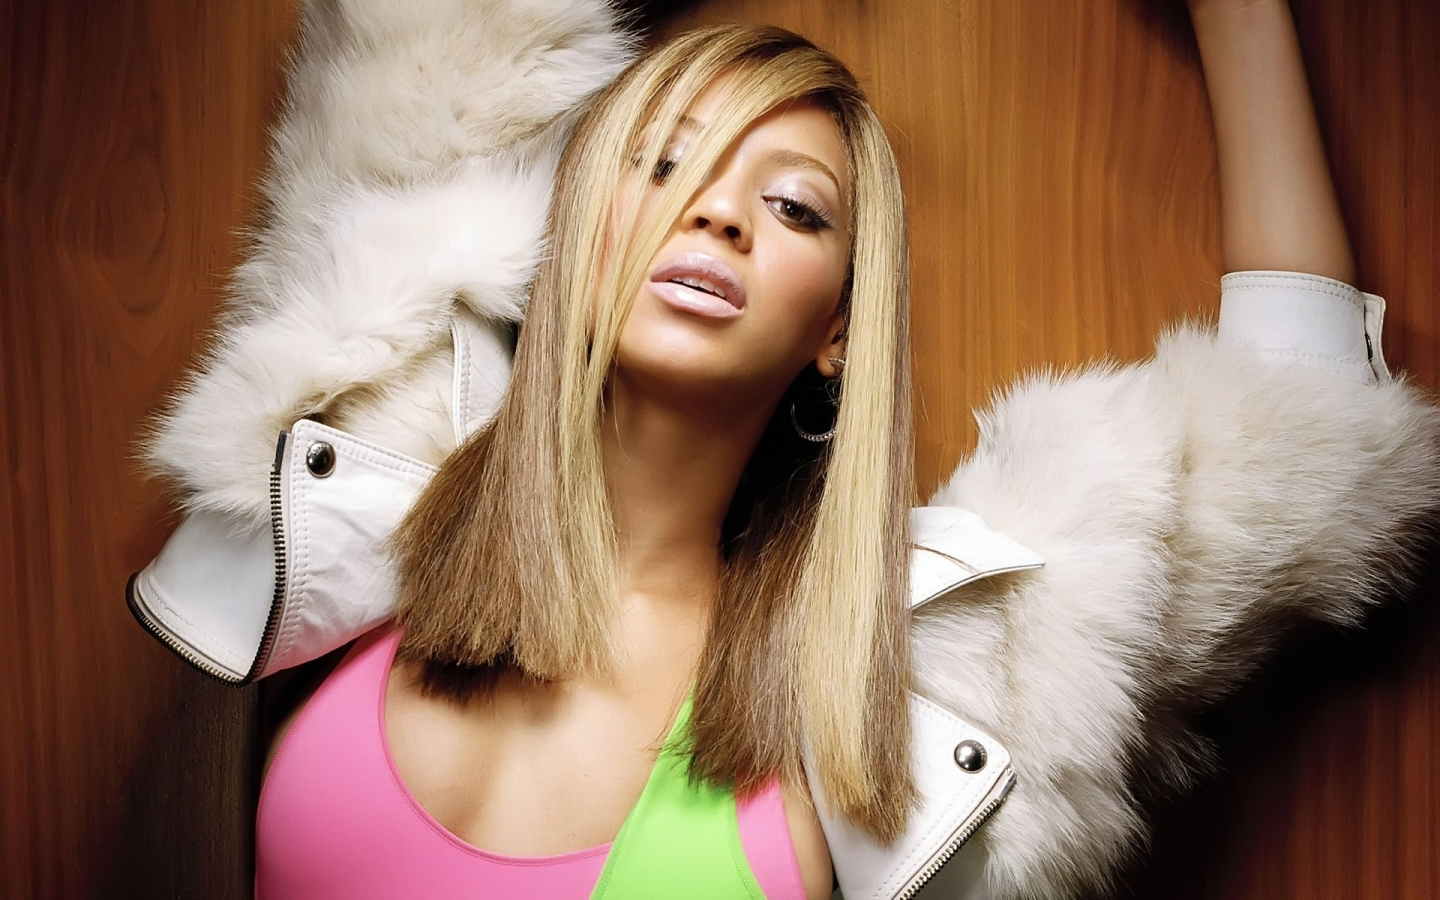 Sensual Beyonce for 1440 x 900 widescreen resolution